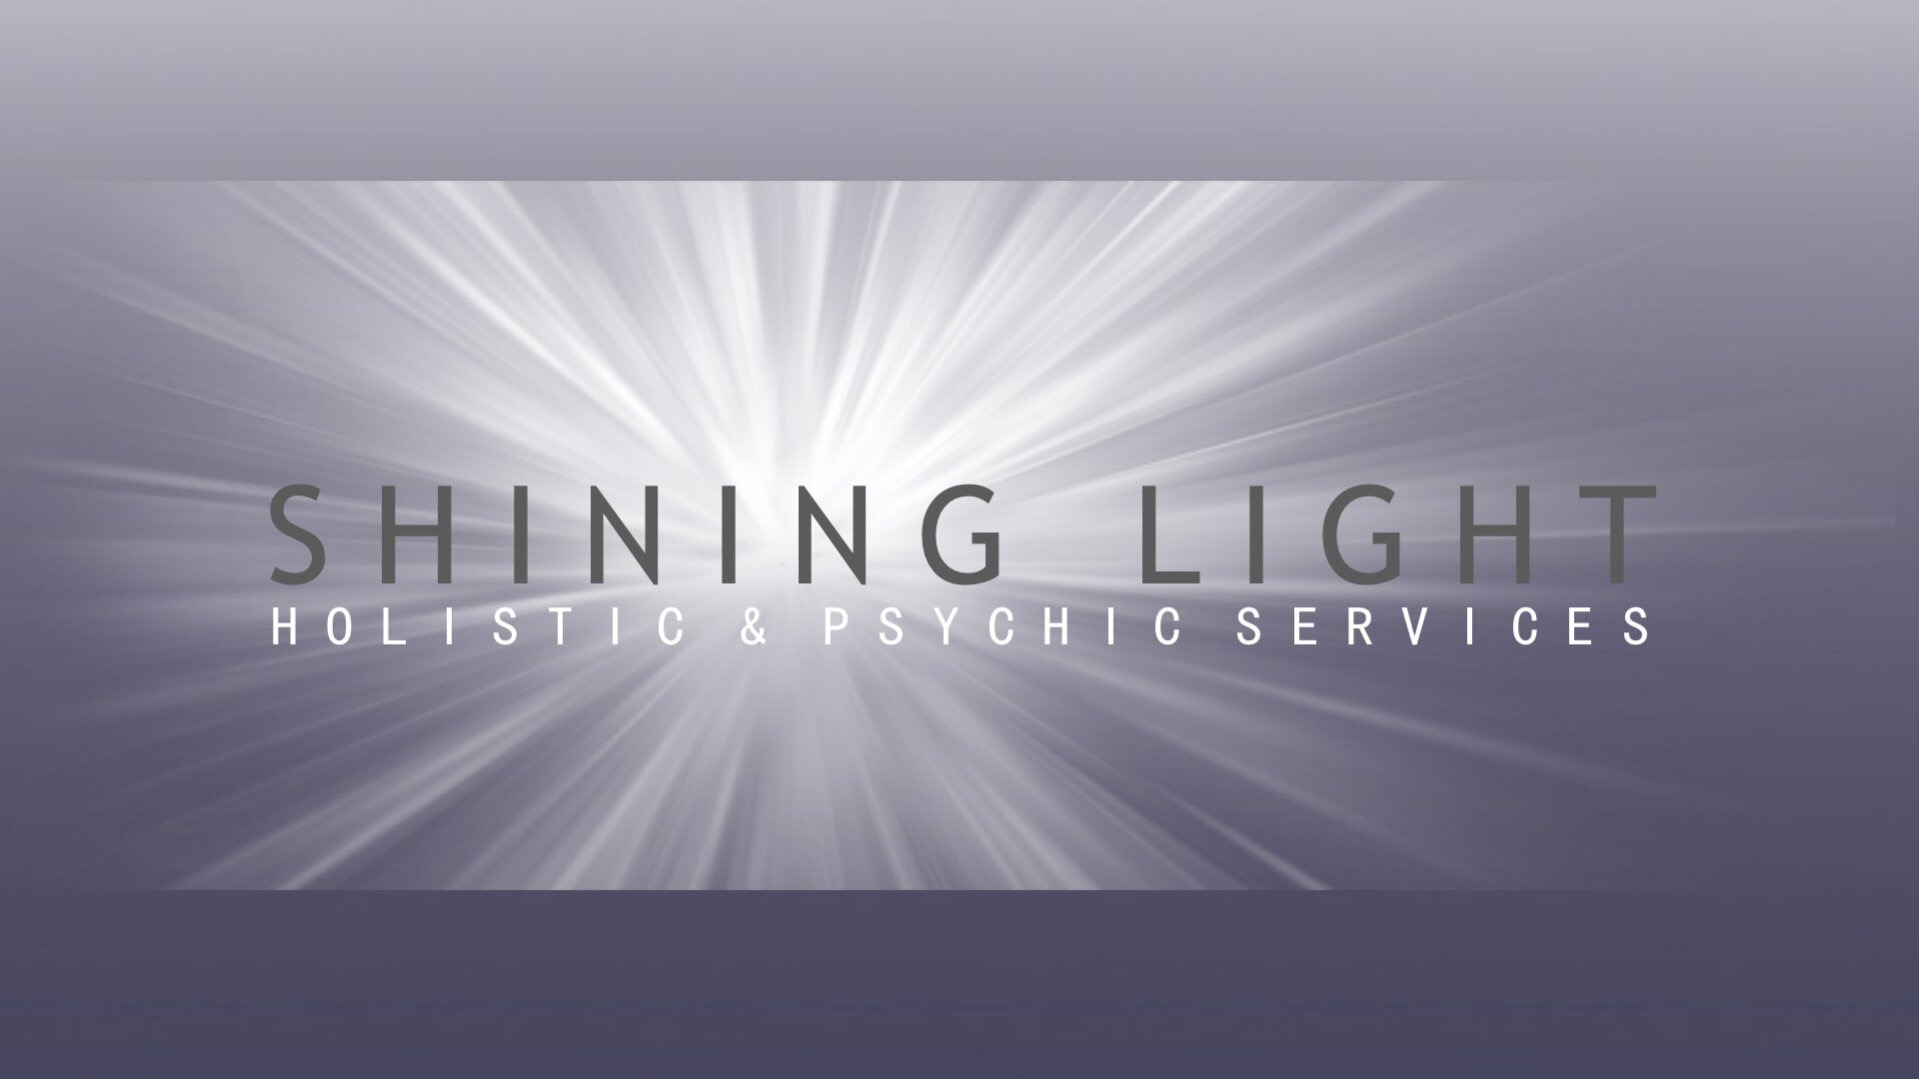 Shining Light discount voucher